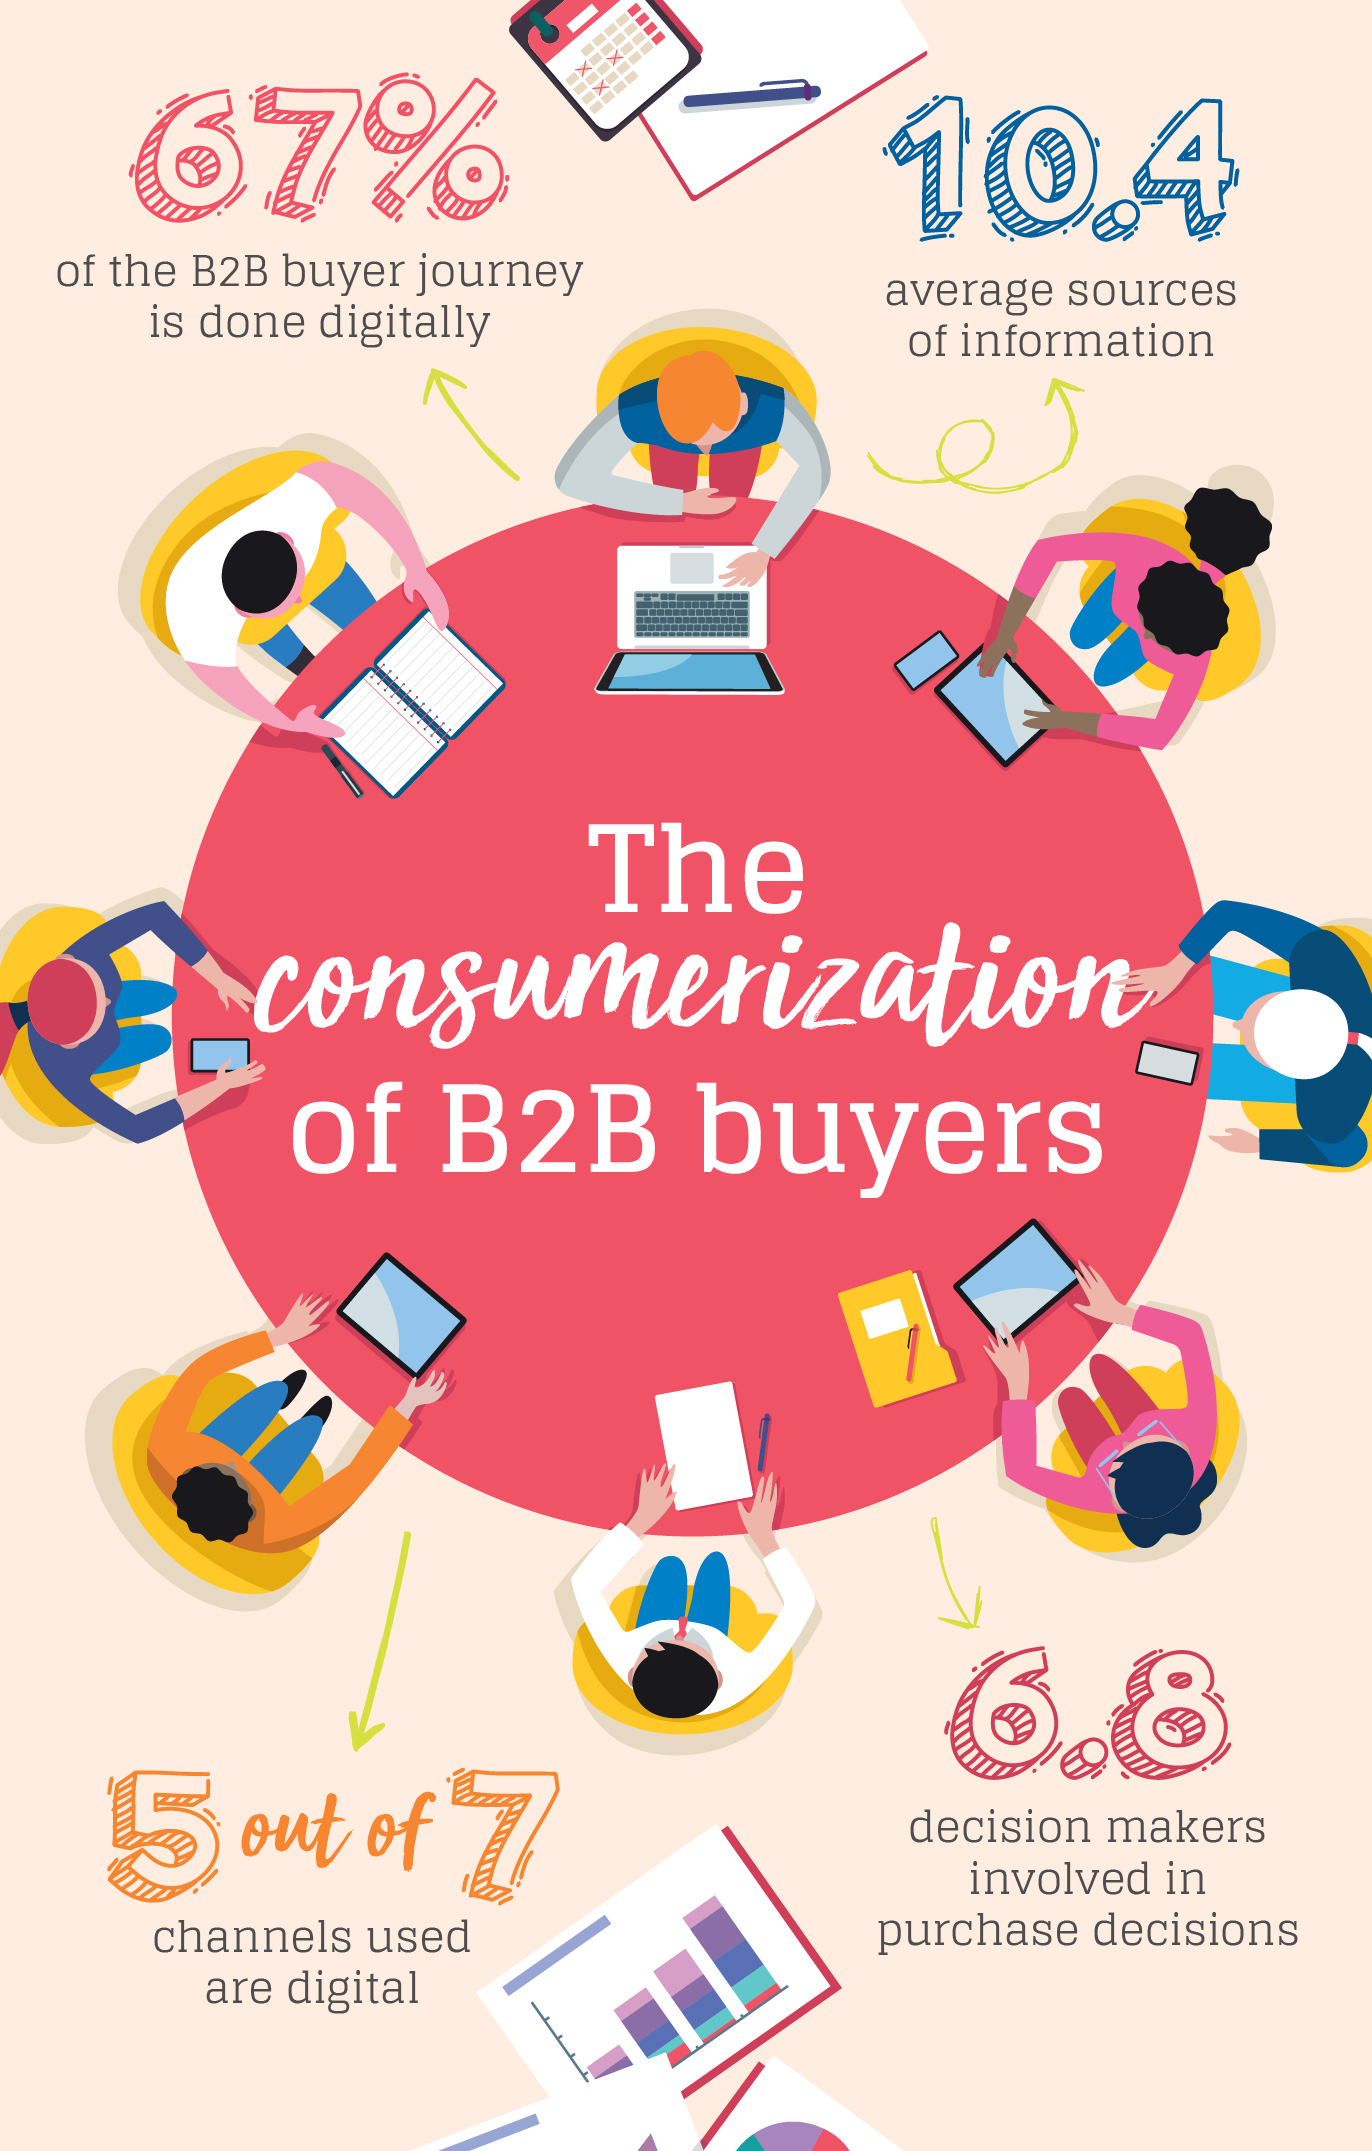 how to market to B2B buyers infographic